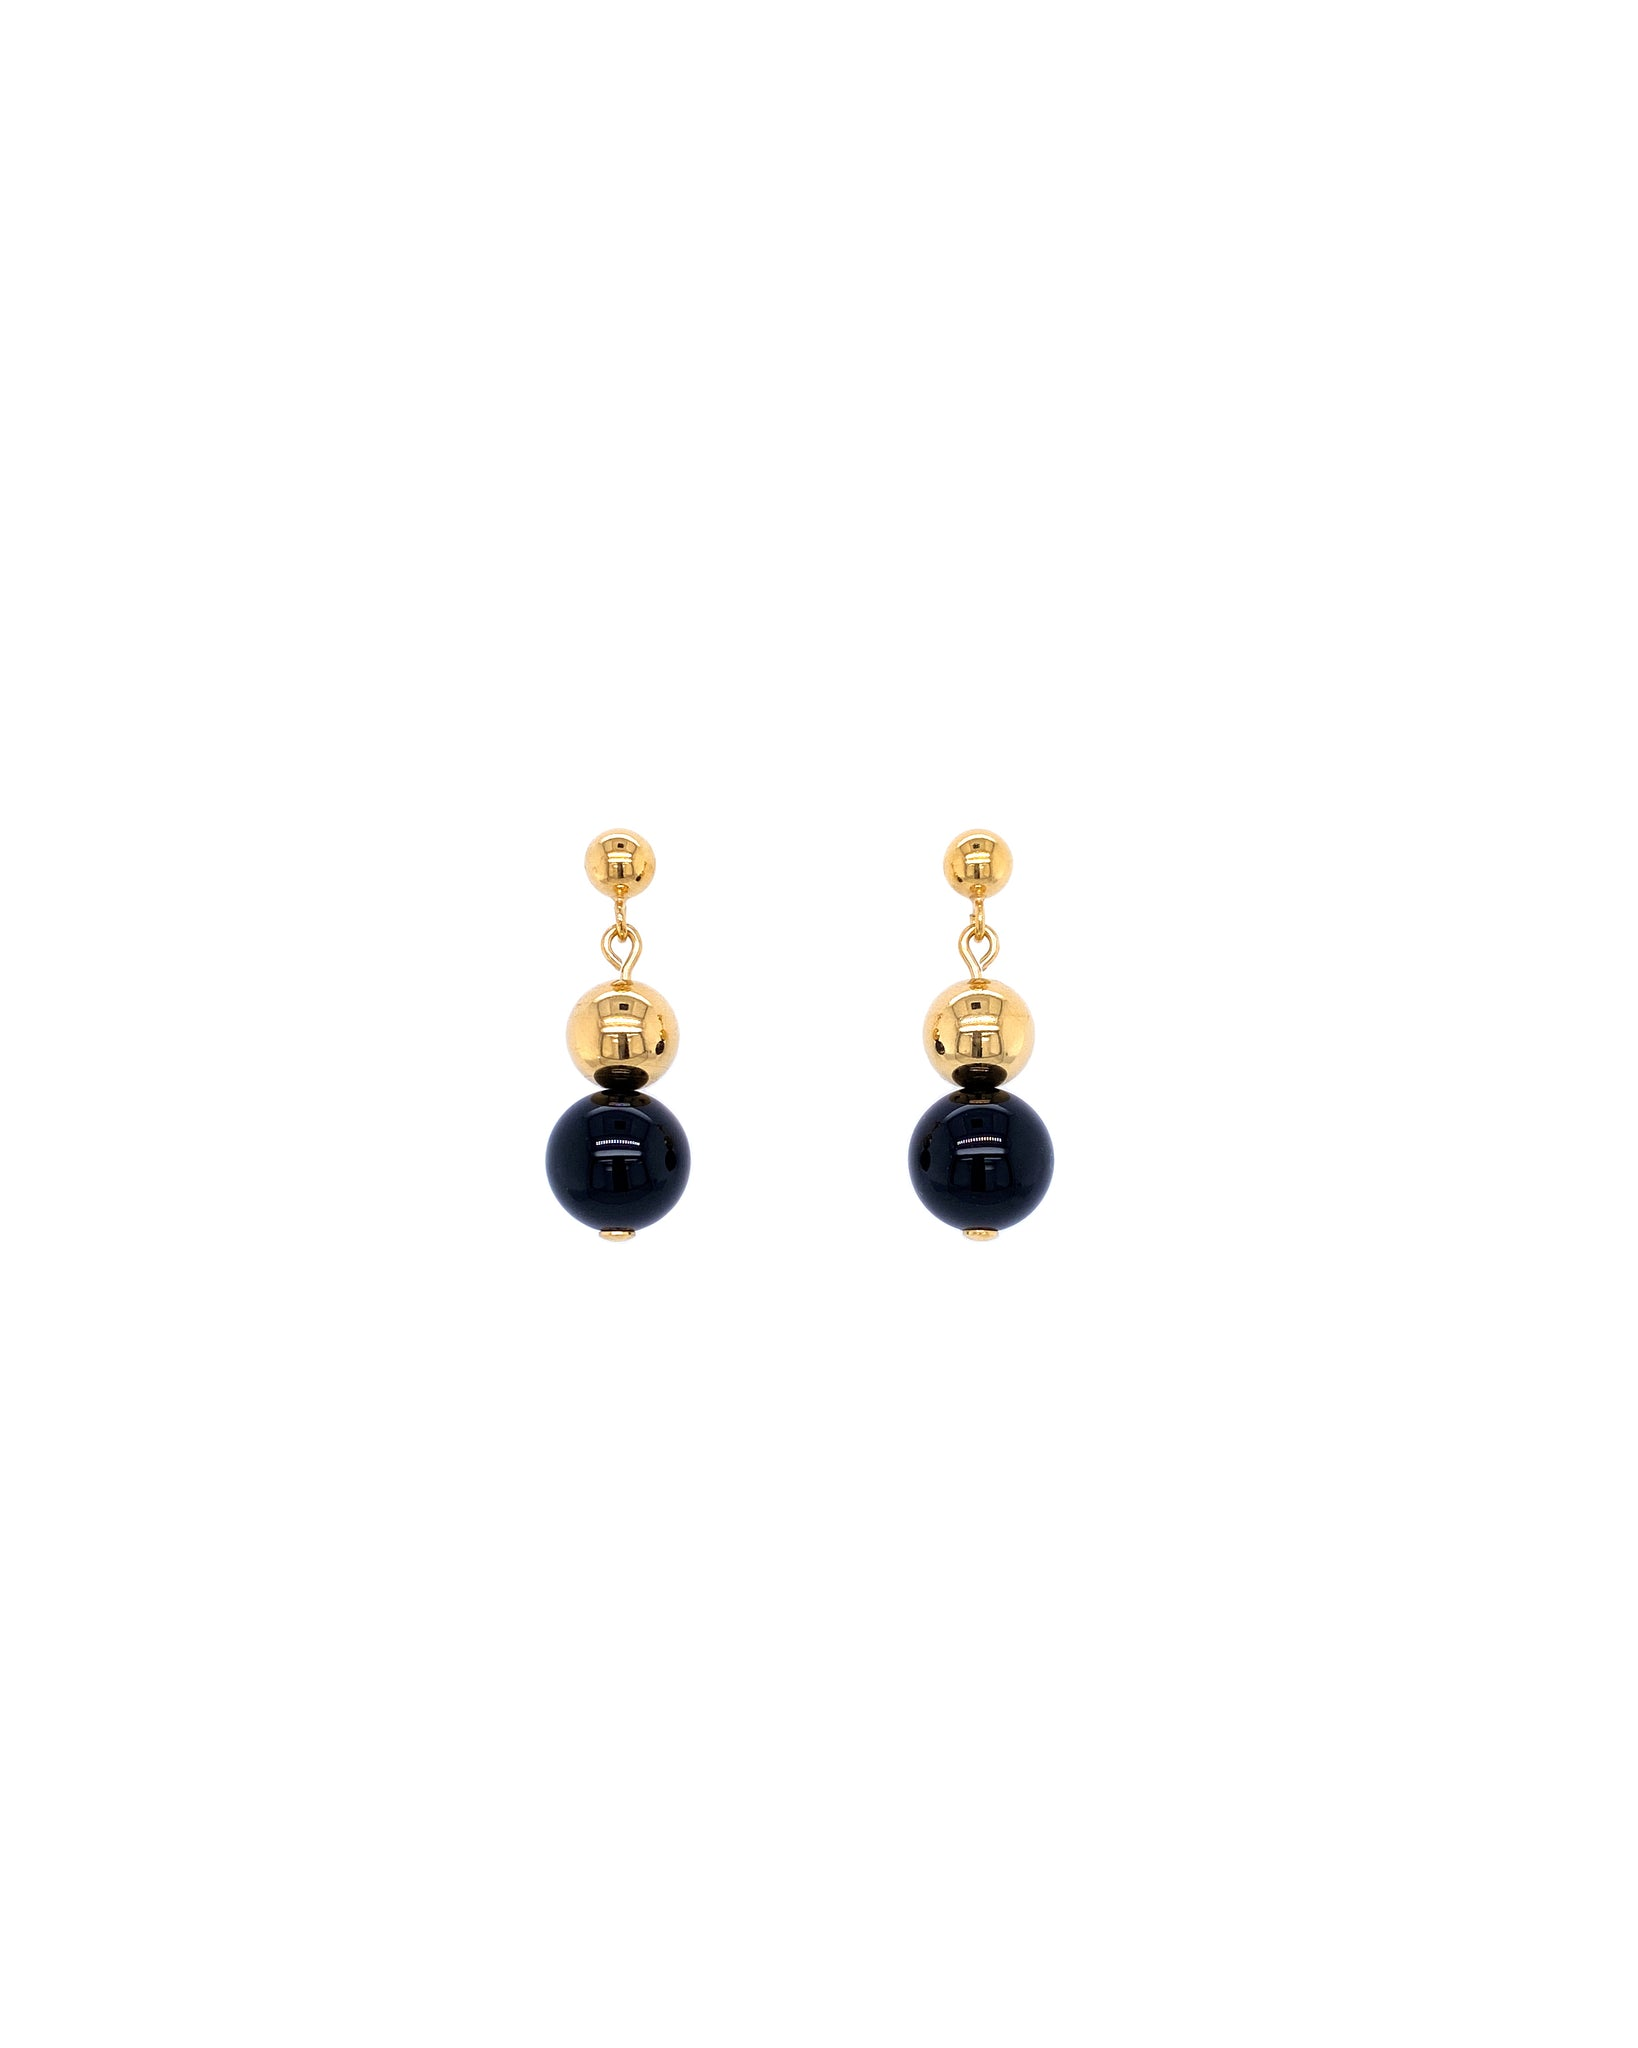 Ora earrings - IDAMARI